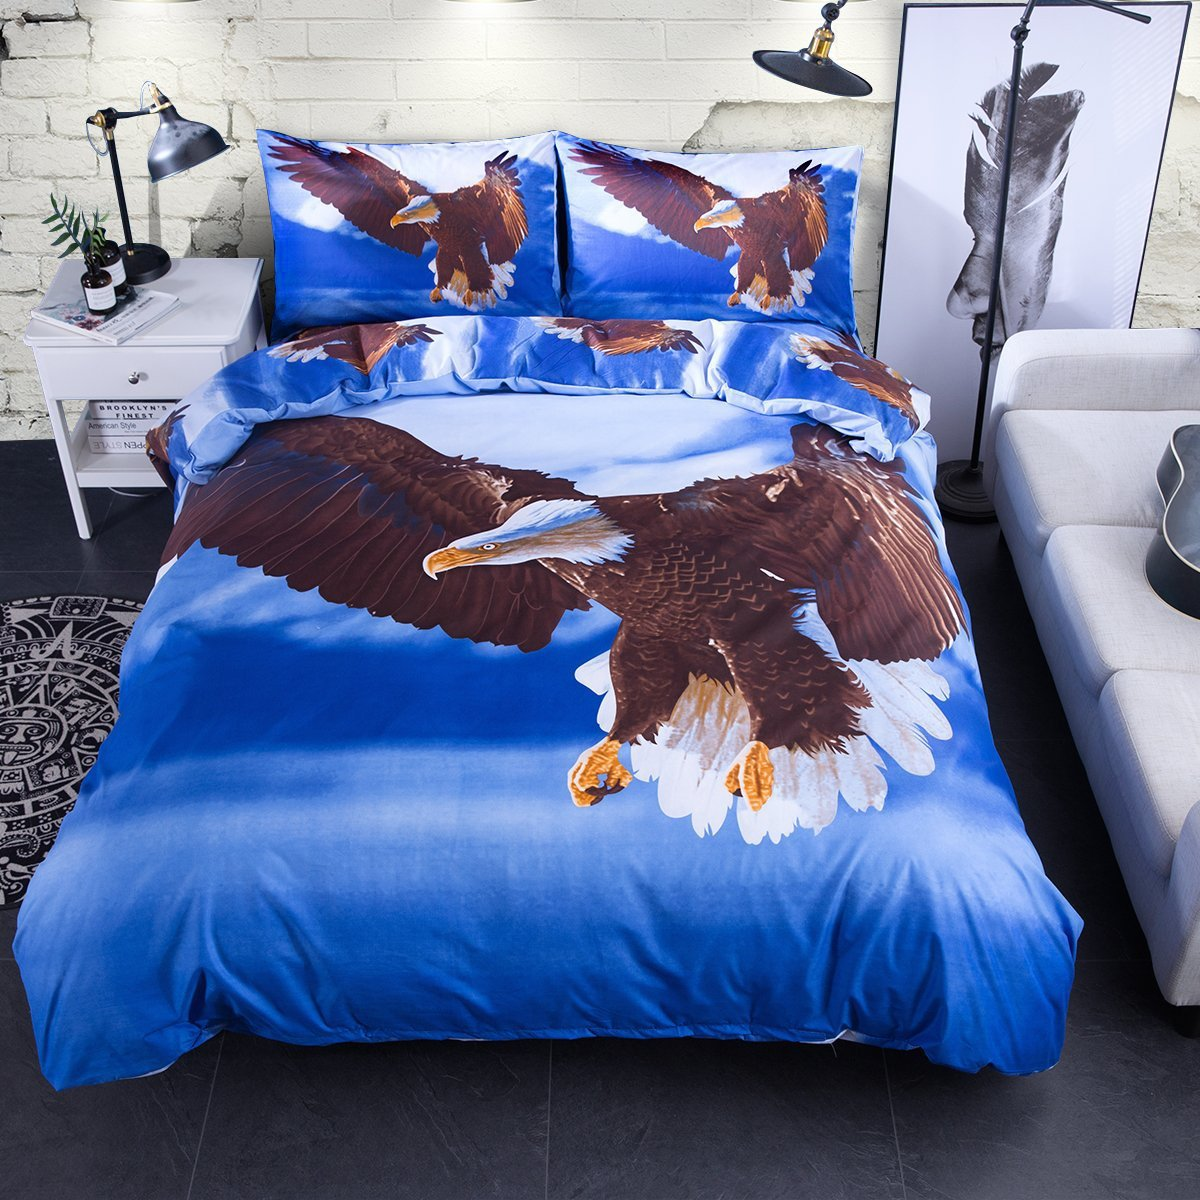 Jml Duvet Cover Set - 3 Pieces 3d Animal Print Bedding Sets - Hypoallergenic Microfiber Down Comforter Quite Cover Zipper & Tie for Women & Men's Bedroom (Eagle, King) by Jml